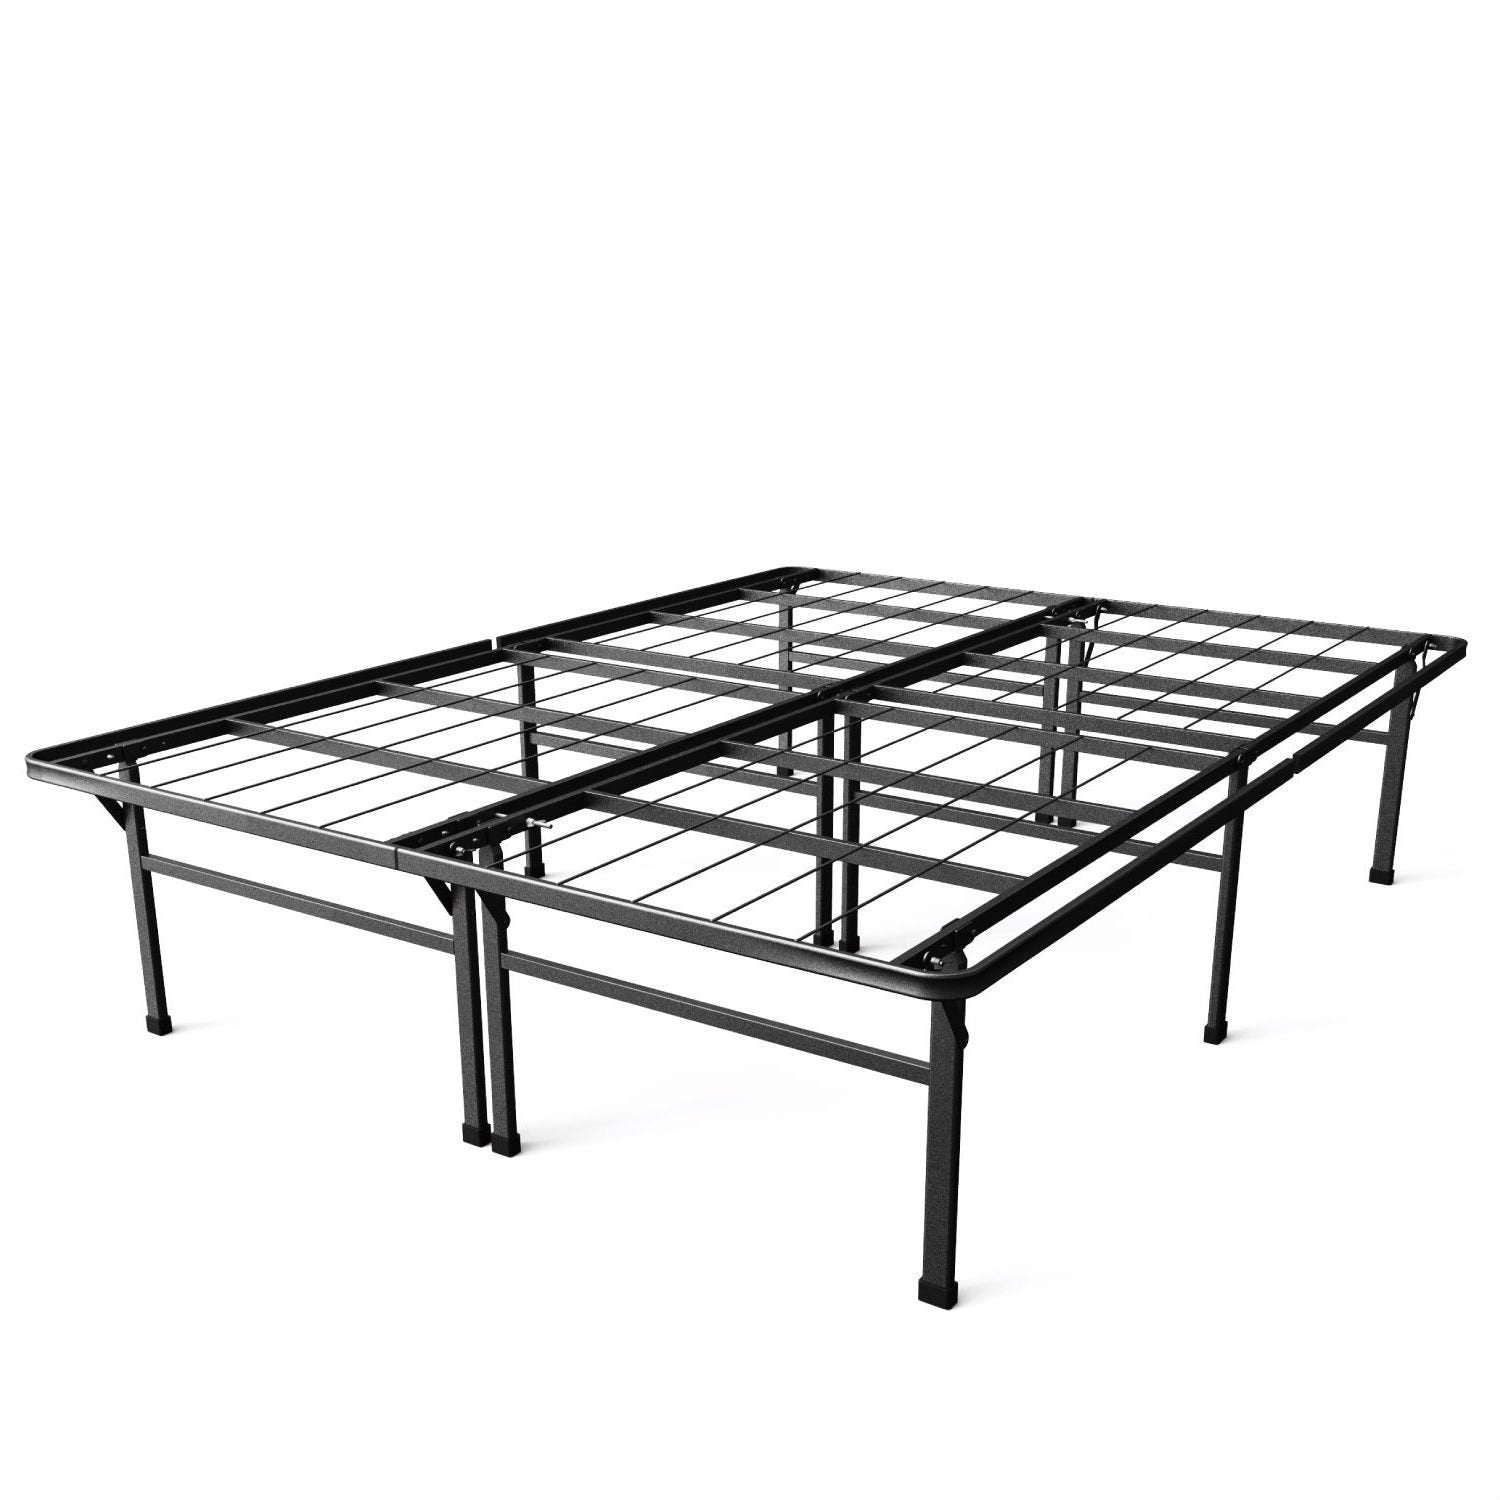 Kelly Platform Bed Frame.